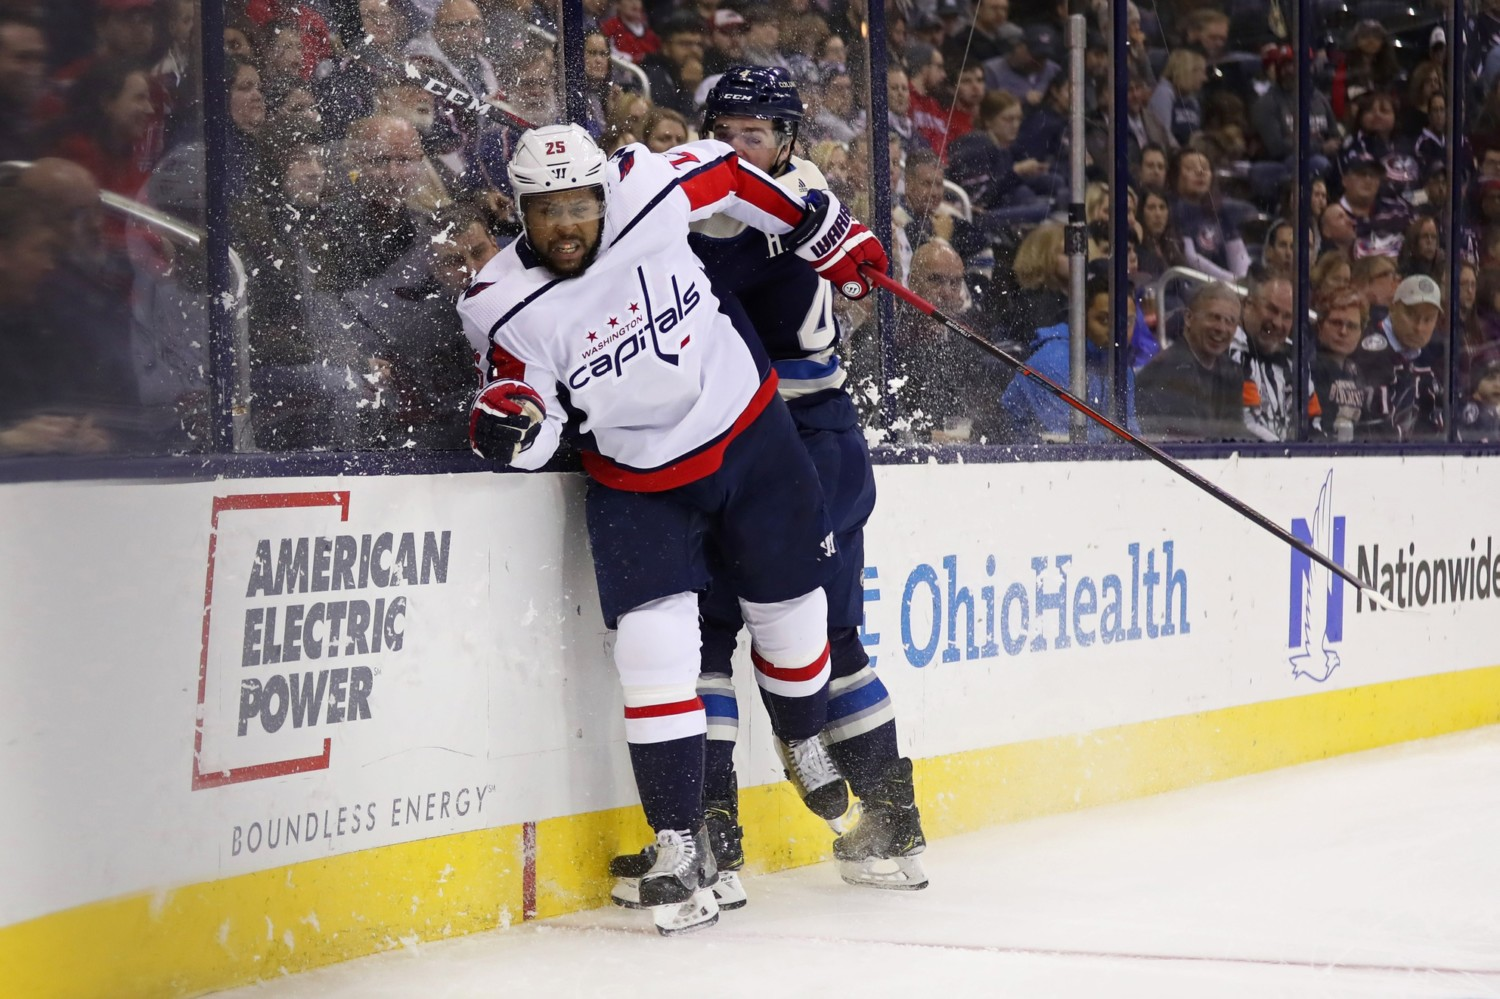 Capitals think twice, cut Devante Smith-Pelly loose